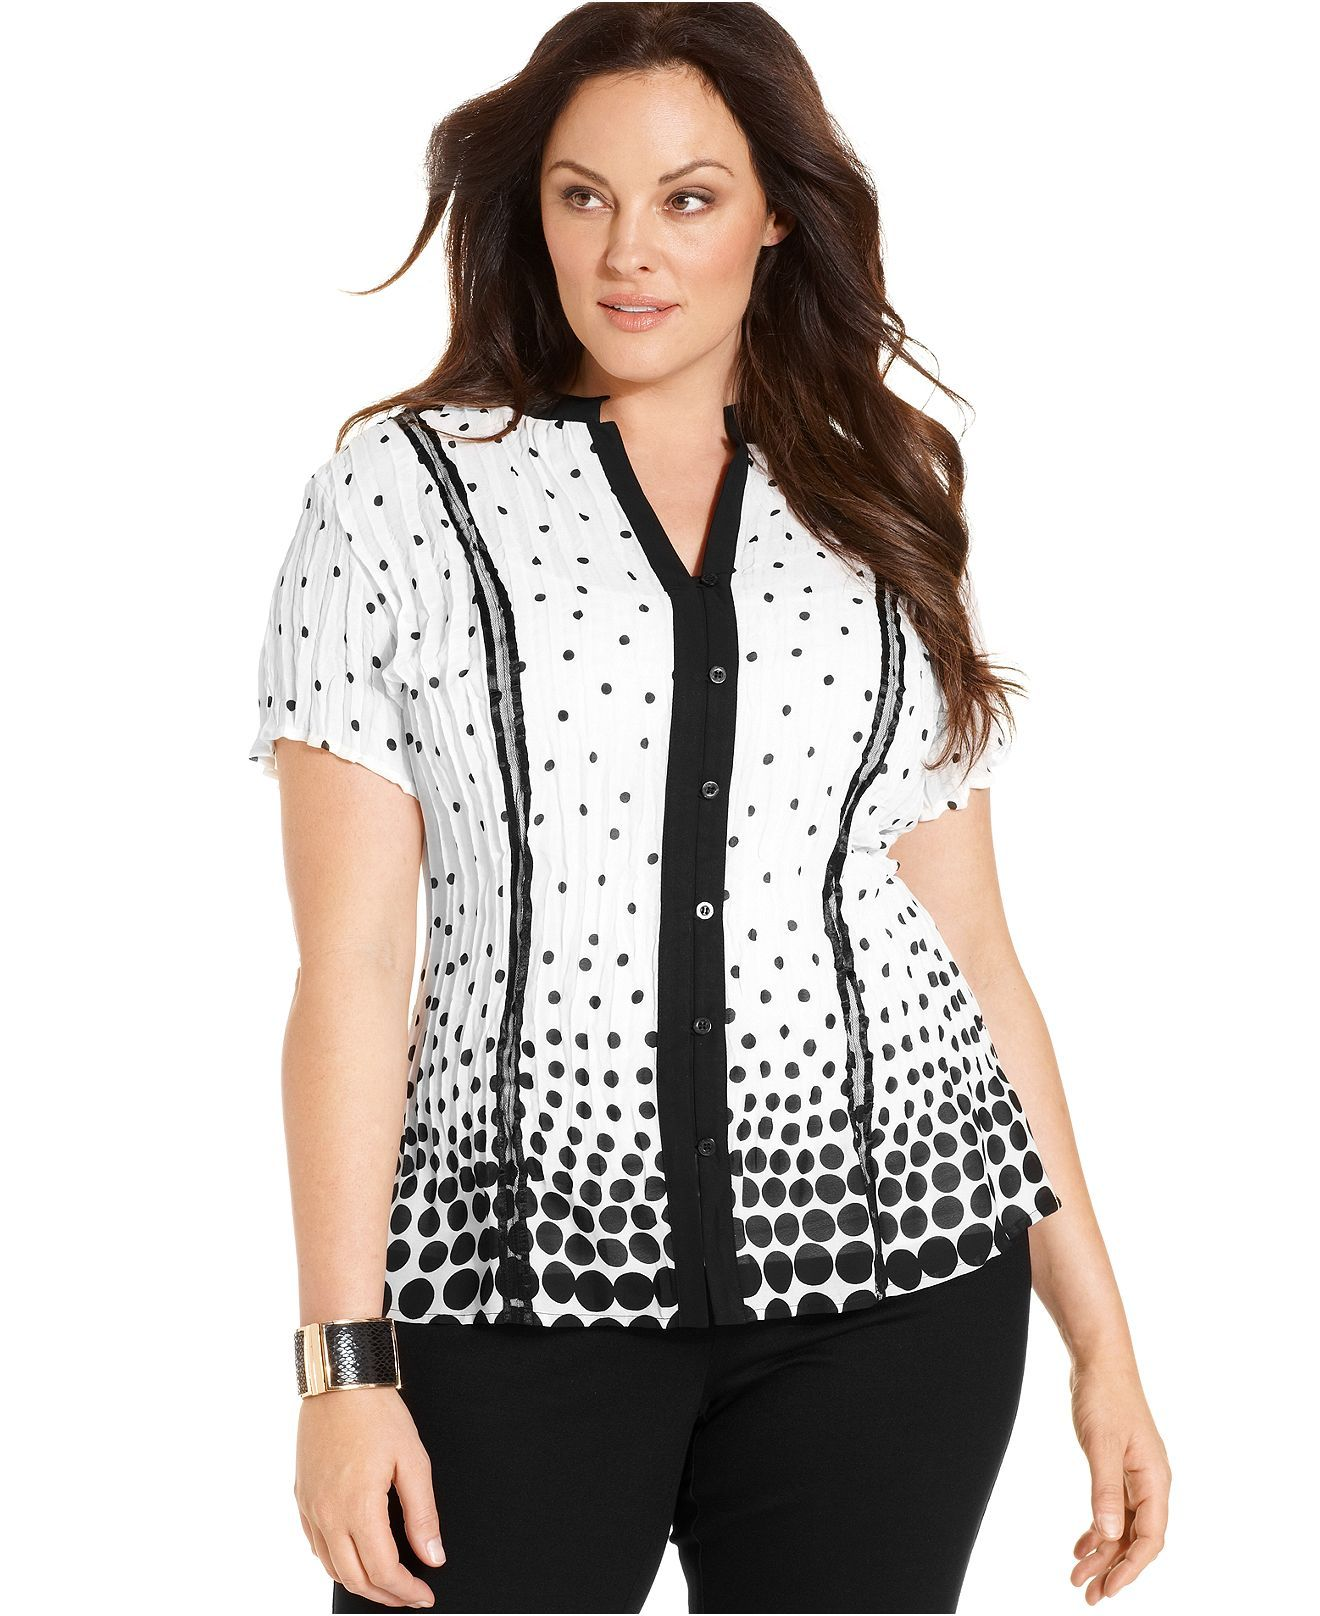 ELOQUII is the ultimate destination for trendy plus size fashion. With everything from dresses to outerwear to shoes, we offer the best in contemporary fashion to women in sizes Not only do we seek out the hottest styles, but we obsess over fit.